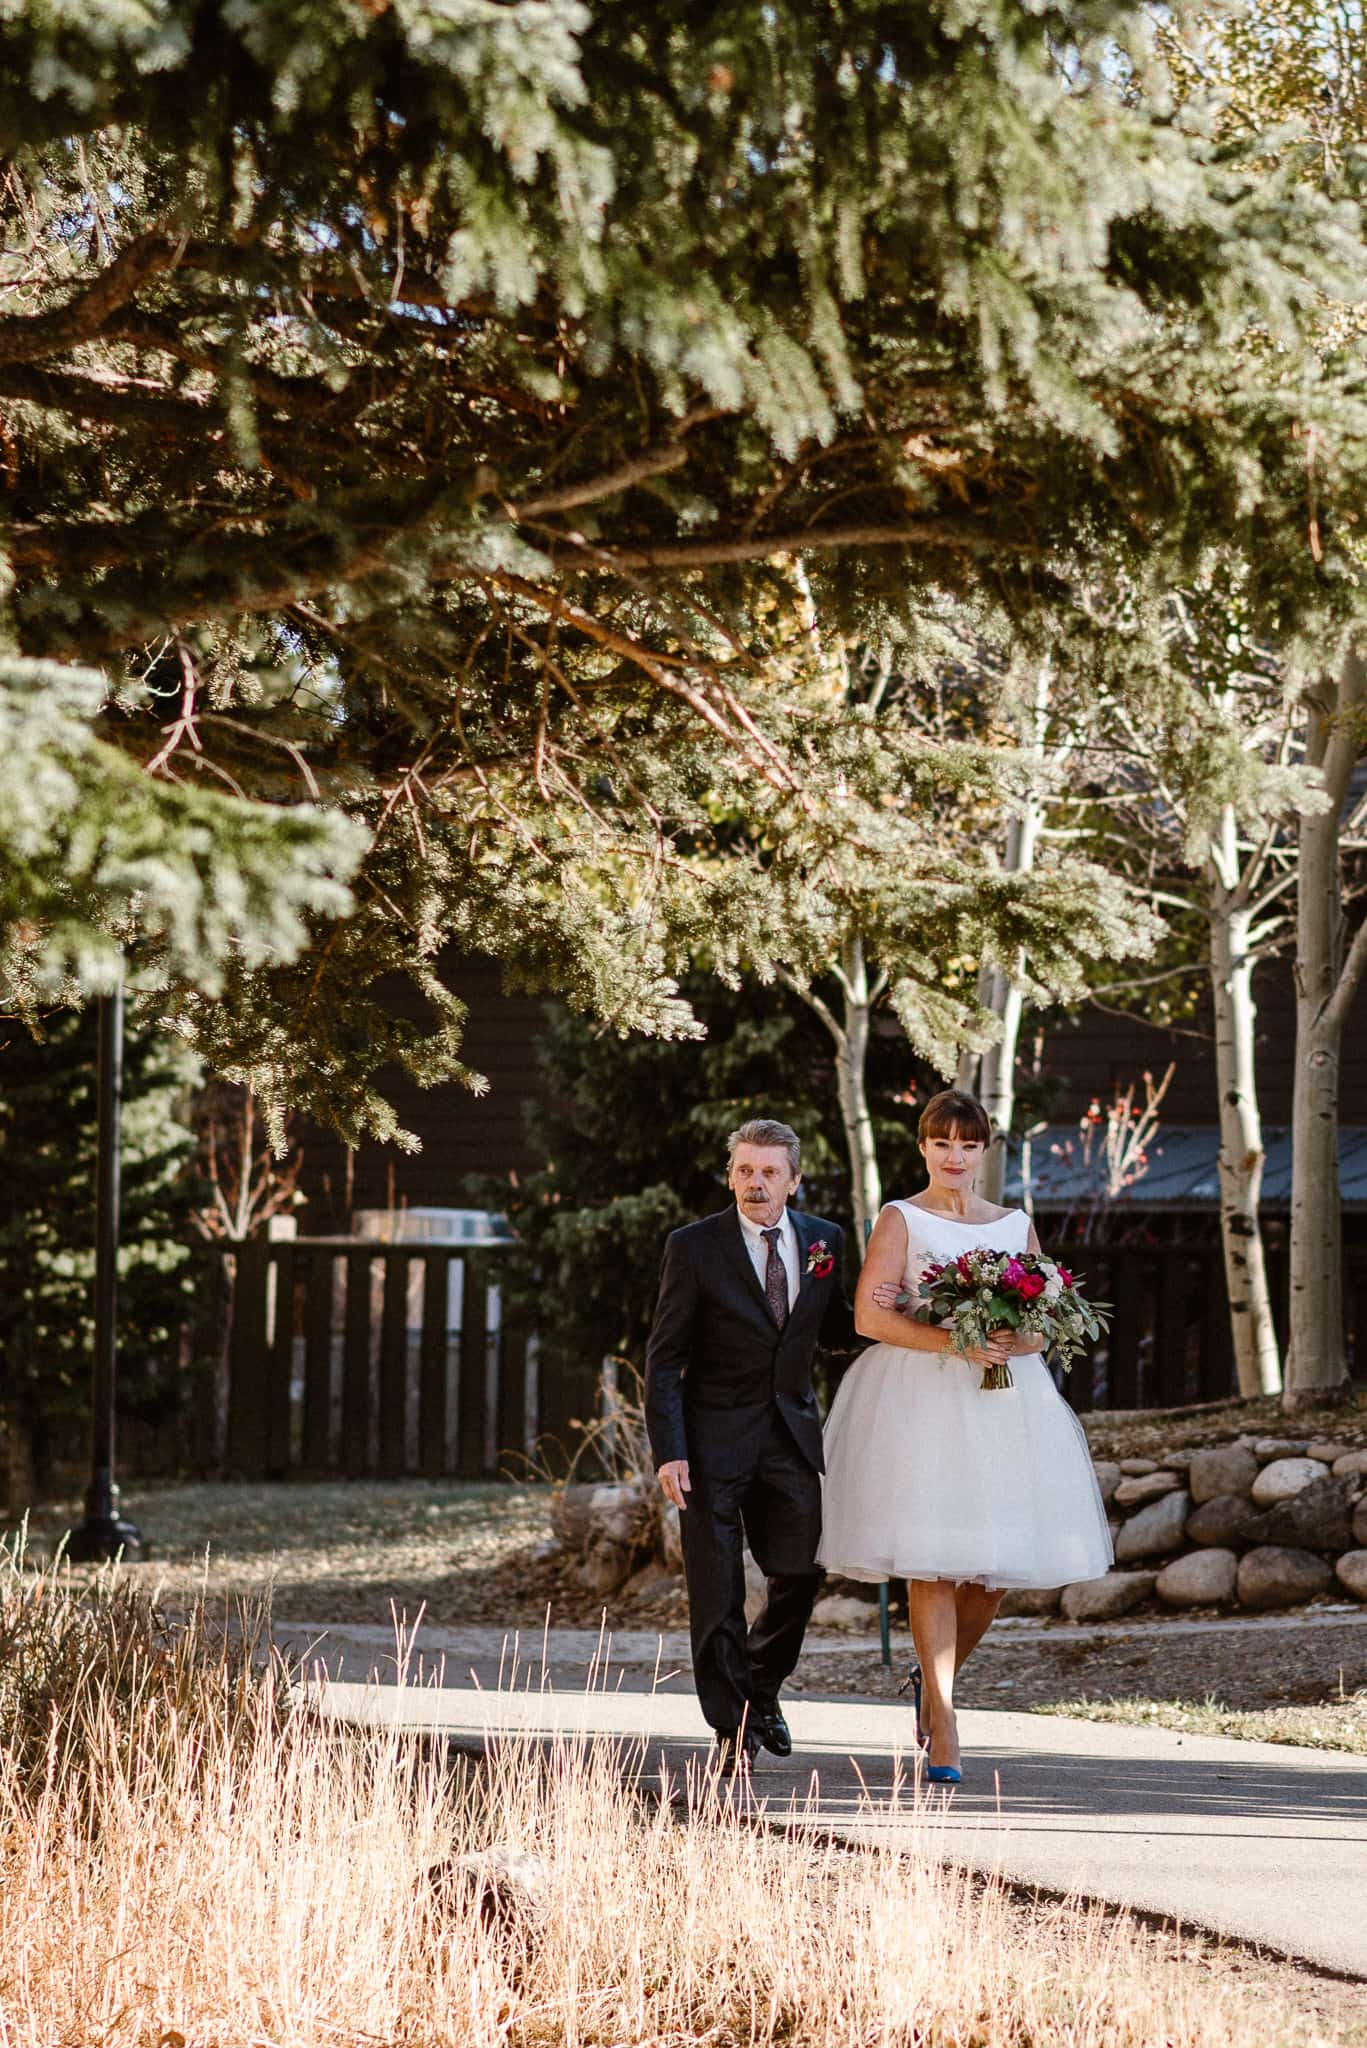 Silverthorne Pavilion wedding ceremony, Colorado wedding photographer, bride and her father walking down the aisle